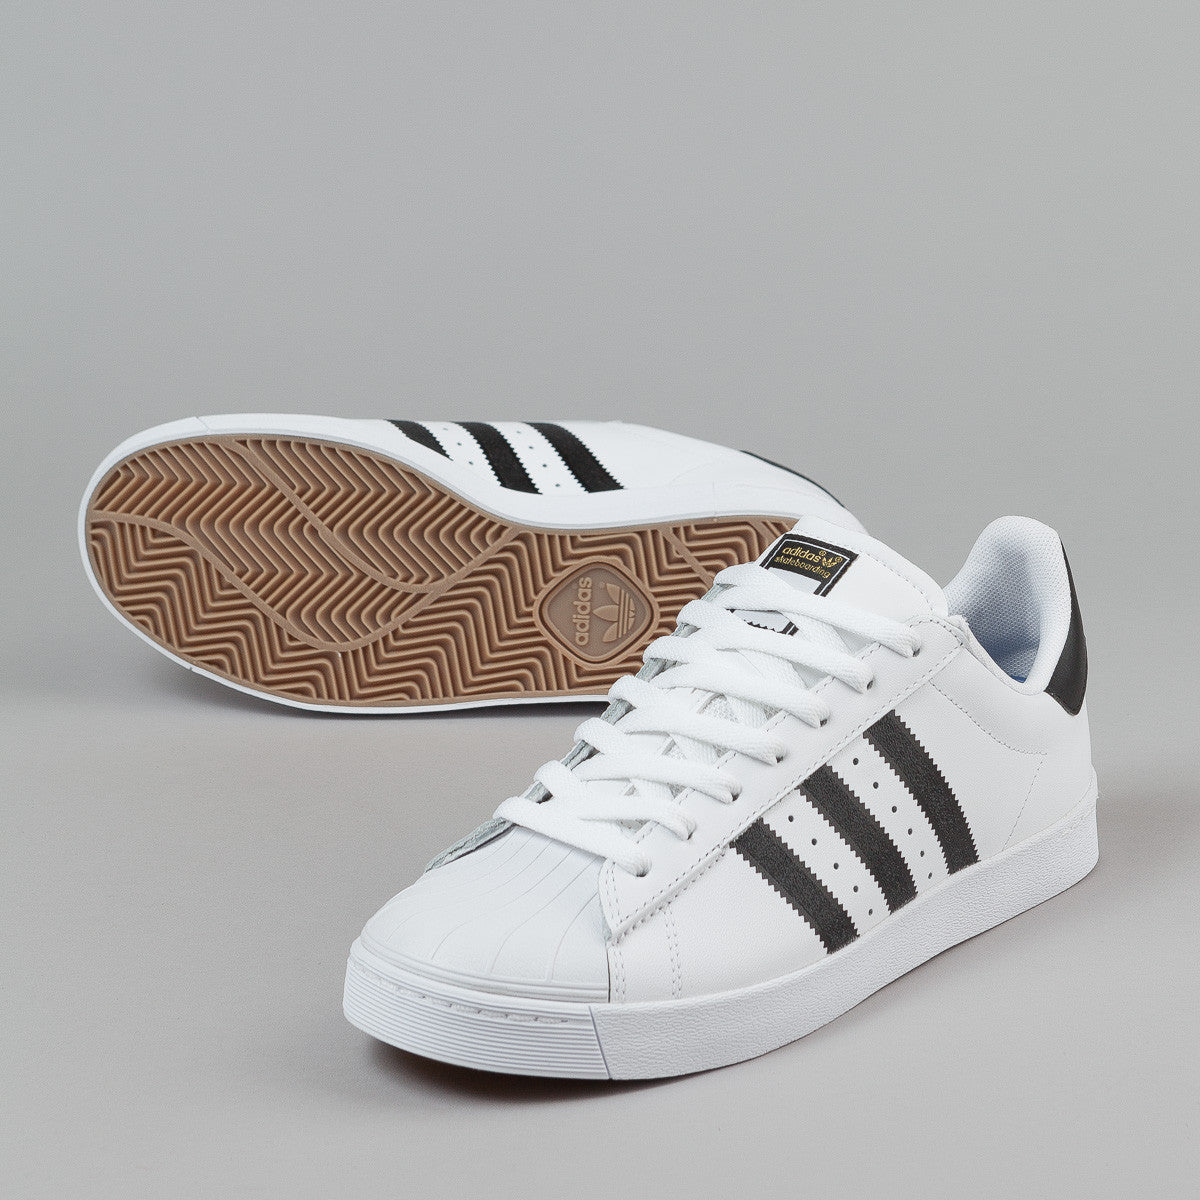 2e0b9bcda41ef3 ... Kids adidas Superstar J GS White Black Ice Size 4 B42369